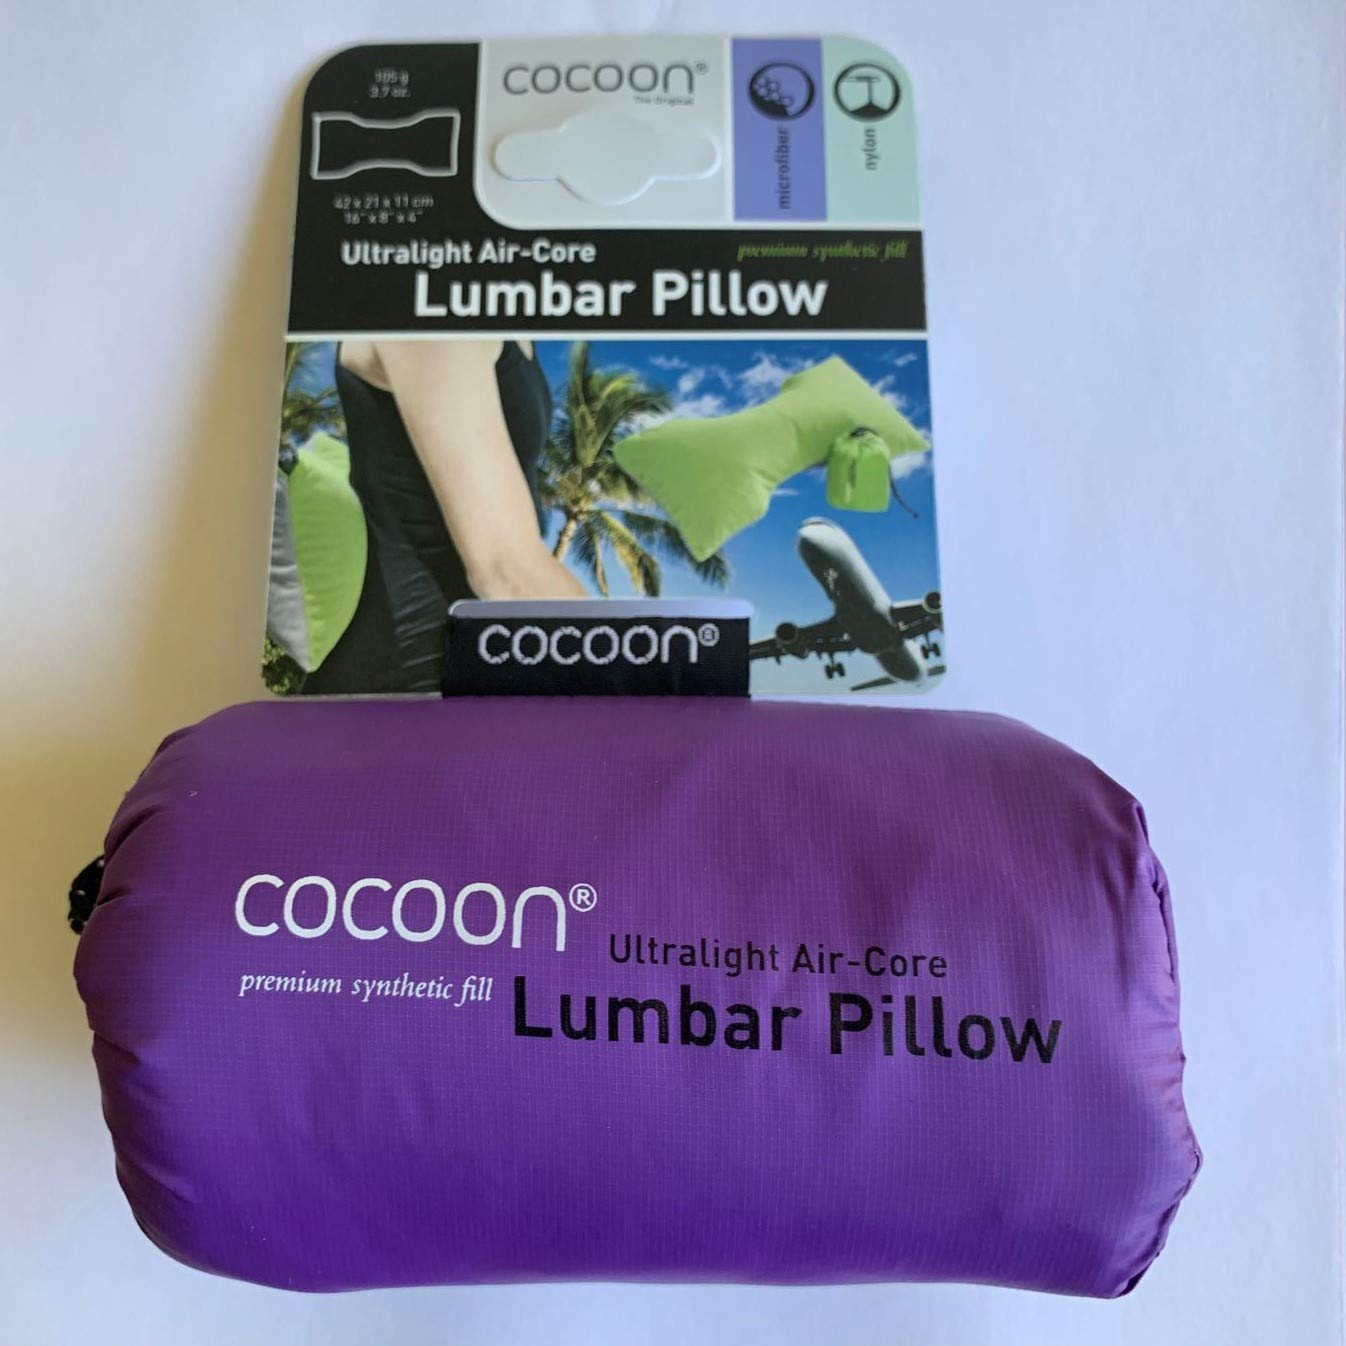 Amazon.com: Cocoon Ultralight Air-Core Lumbar Pillow: Sports ...